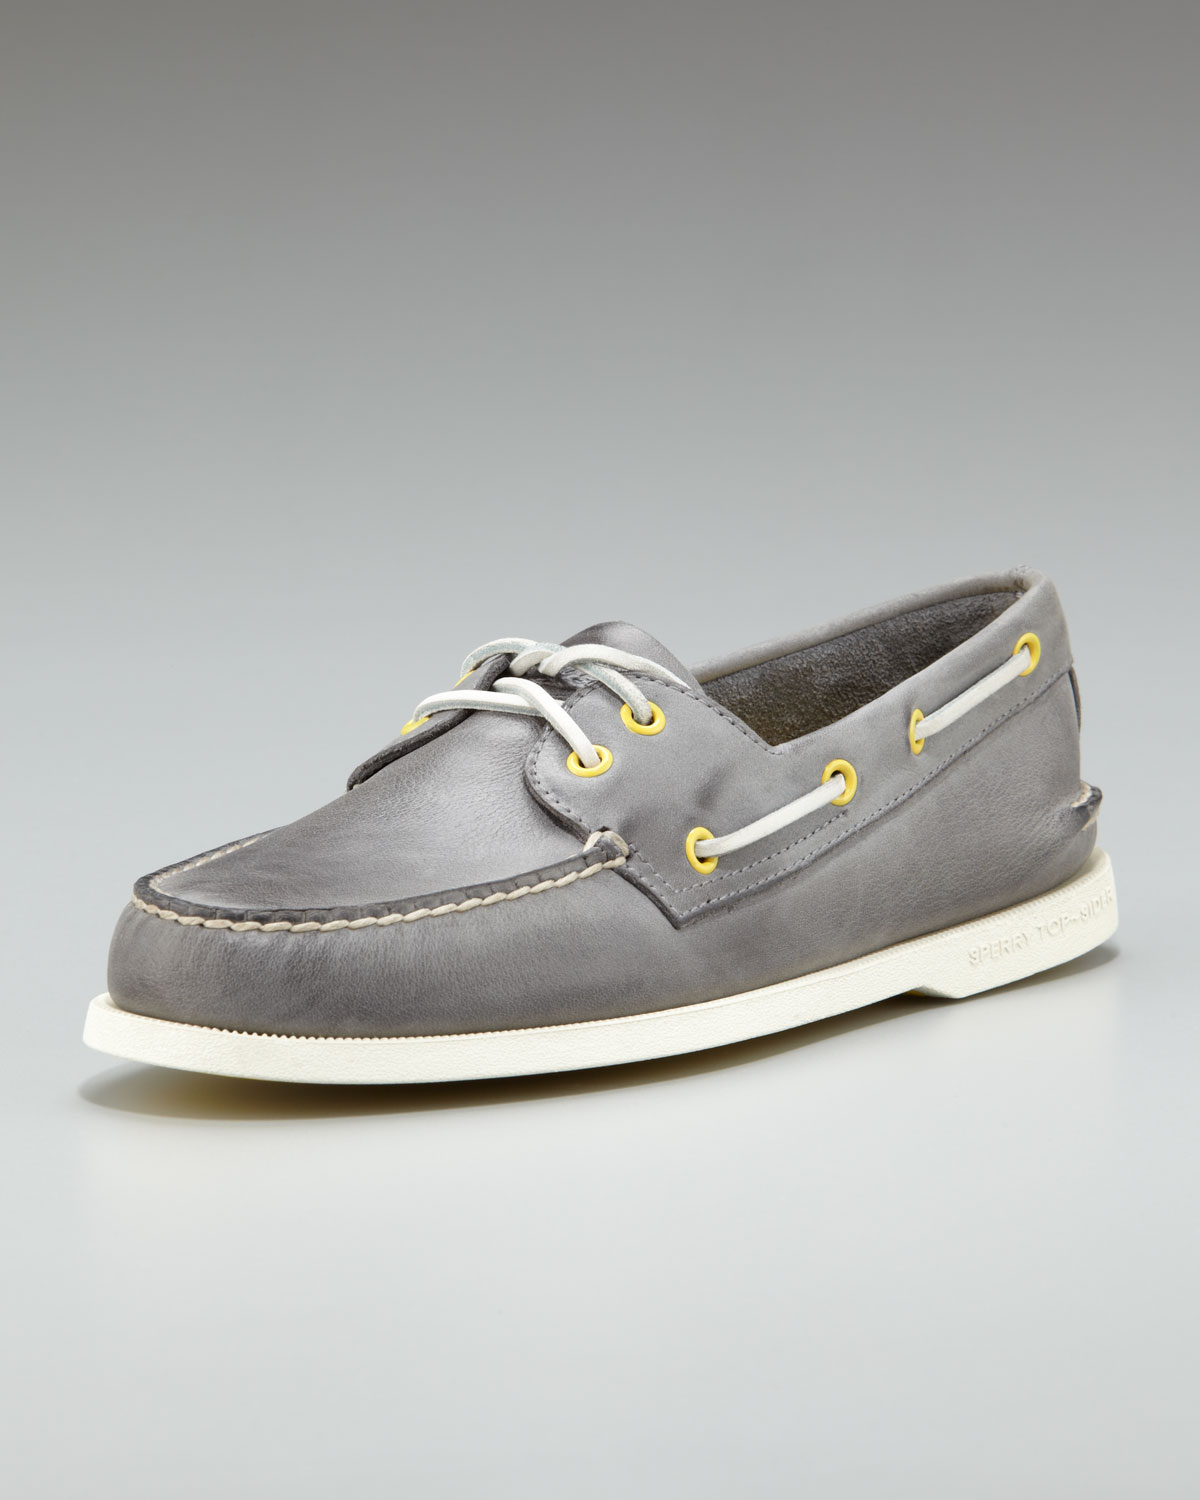 Topsider Daytona Boat Shoes In Grey - Grey Sperry Top-Sider LBeQPkup